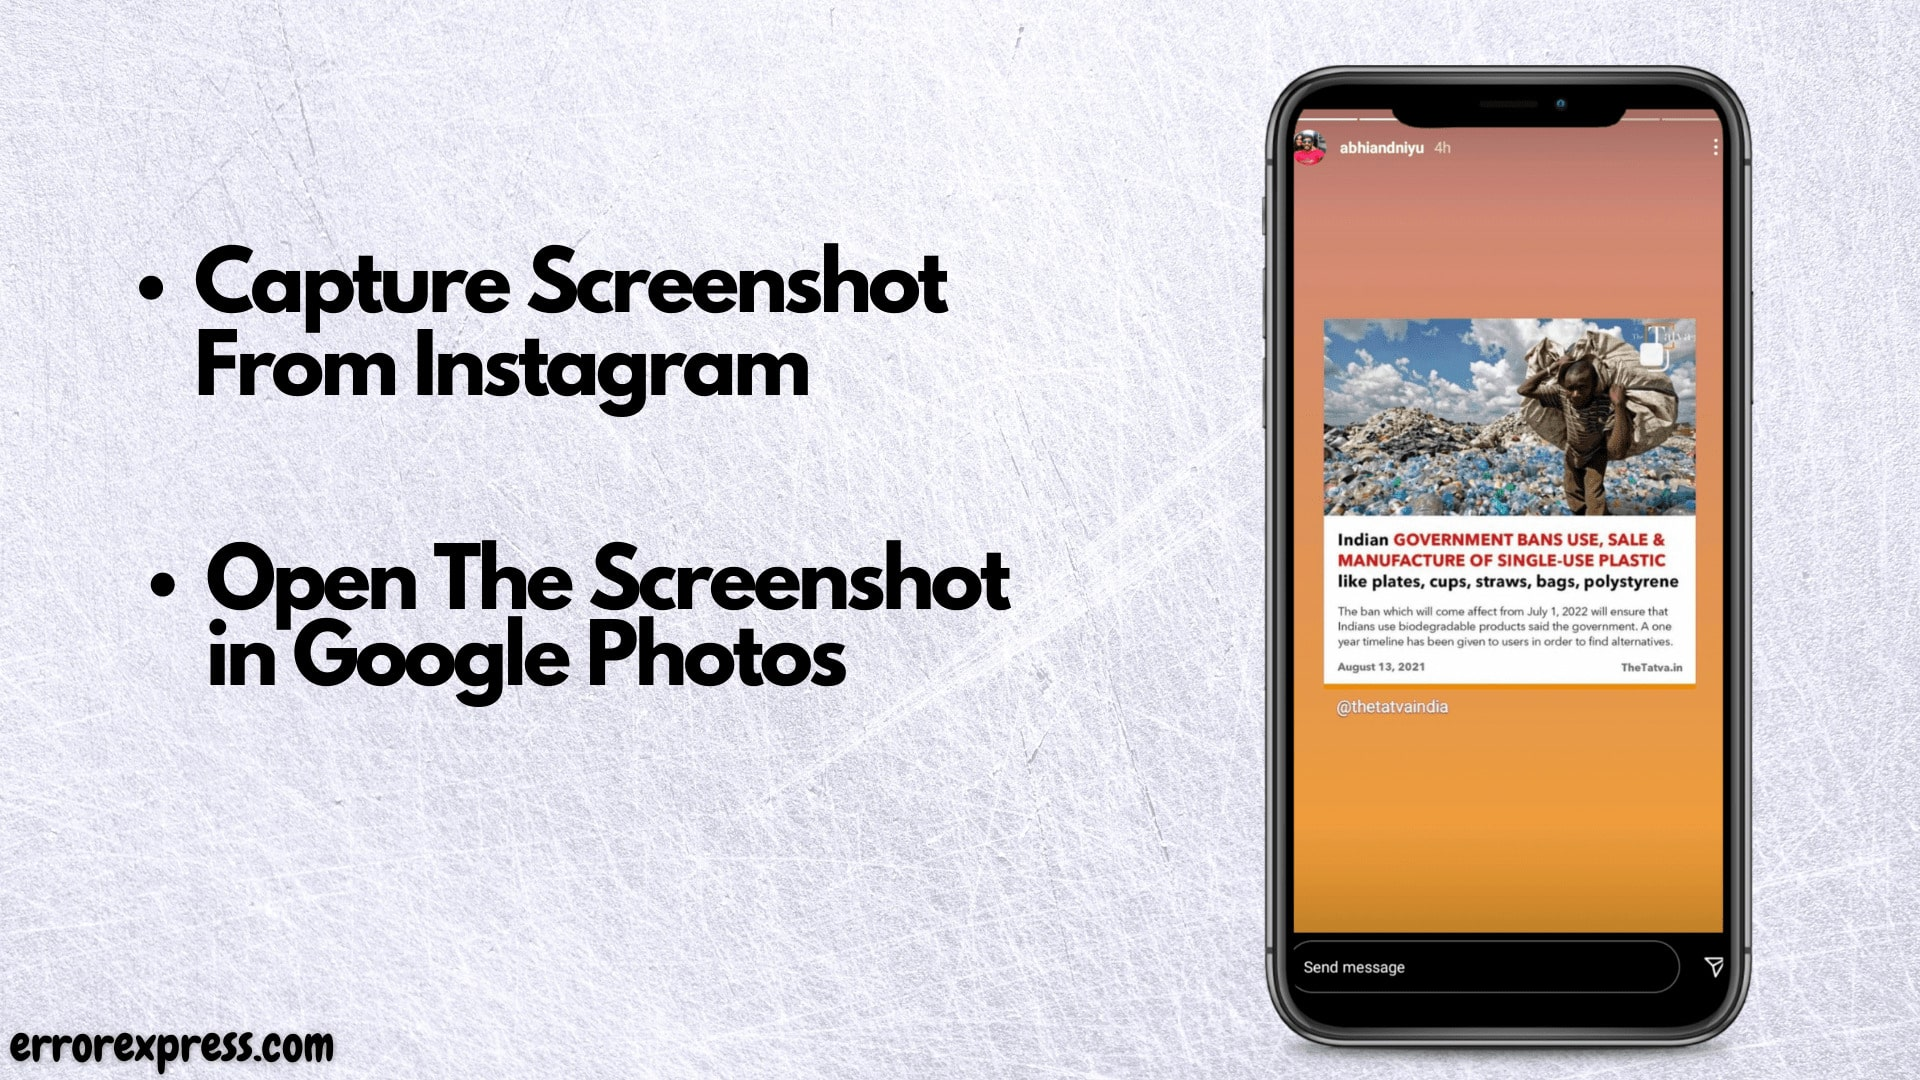 To copy paste text from instagram using ocr technology